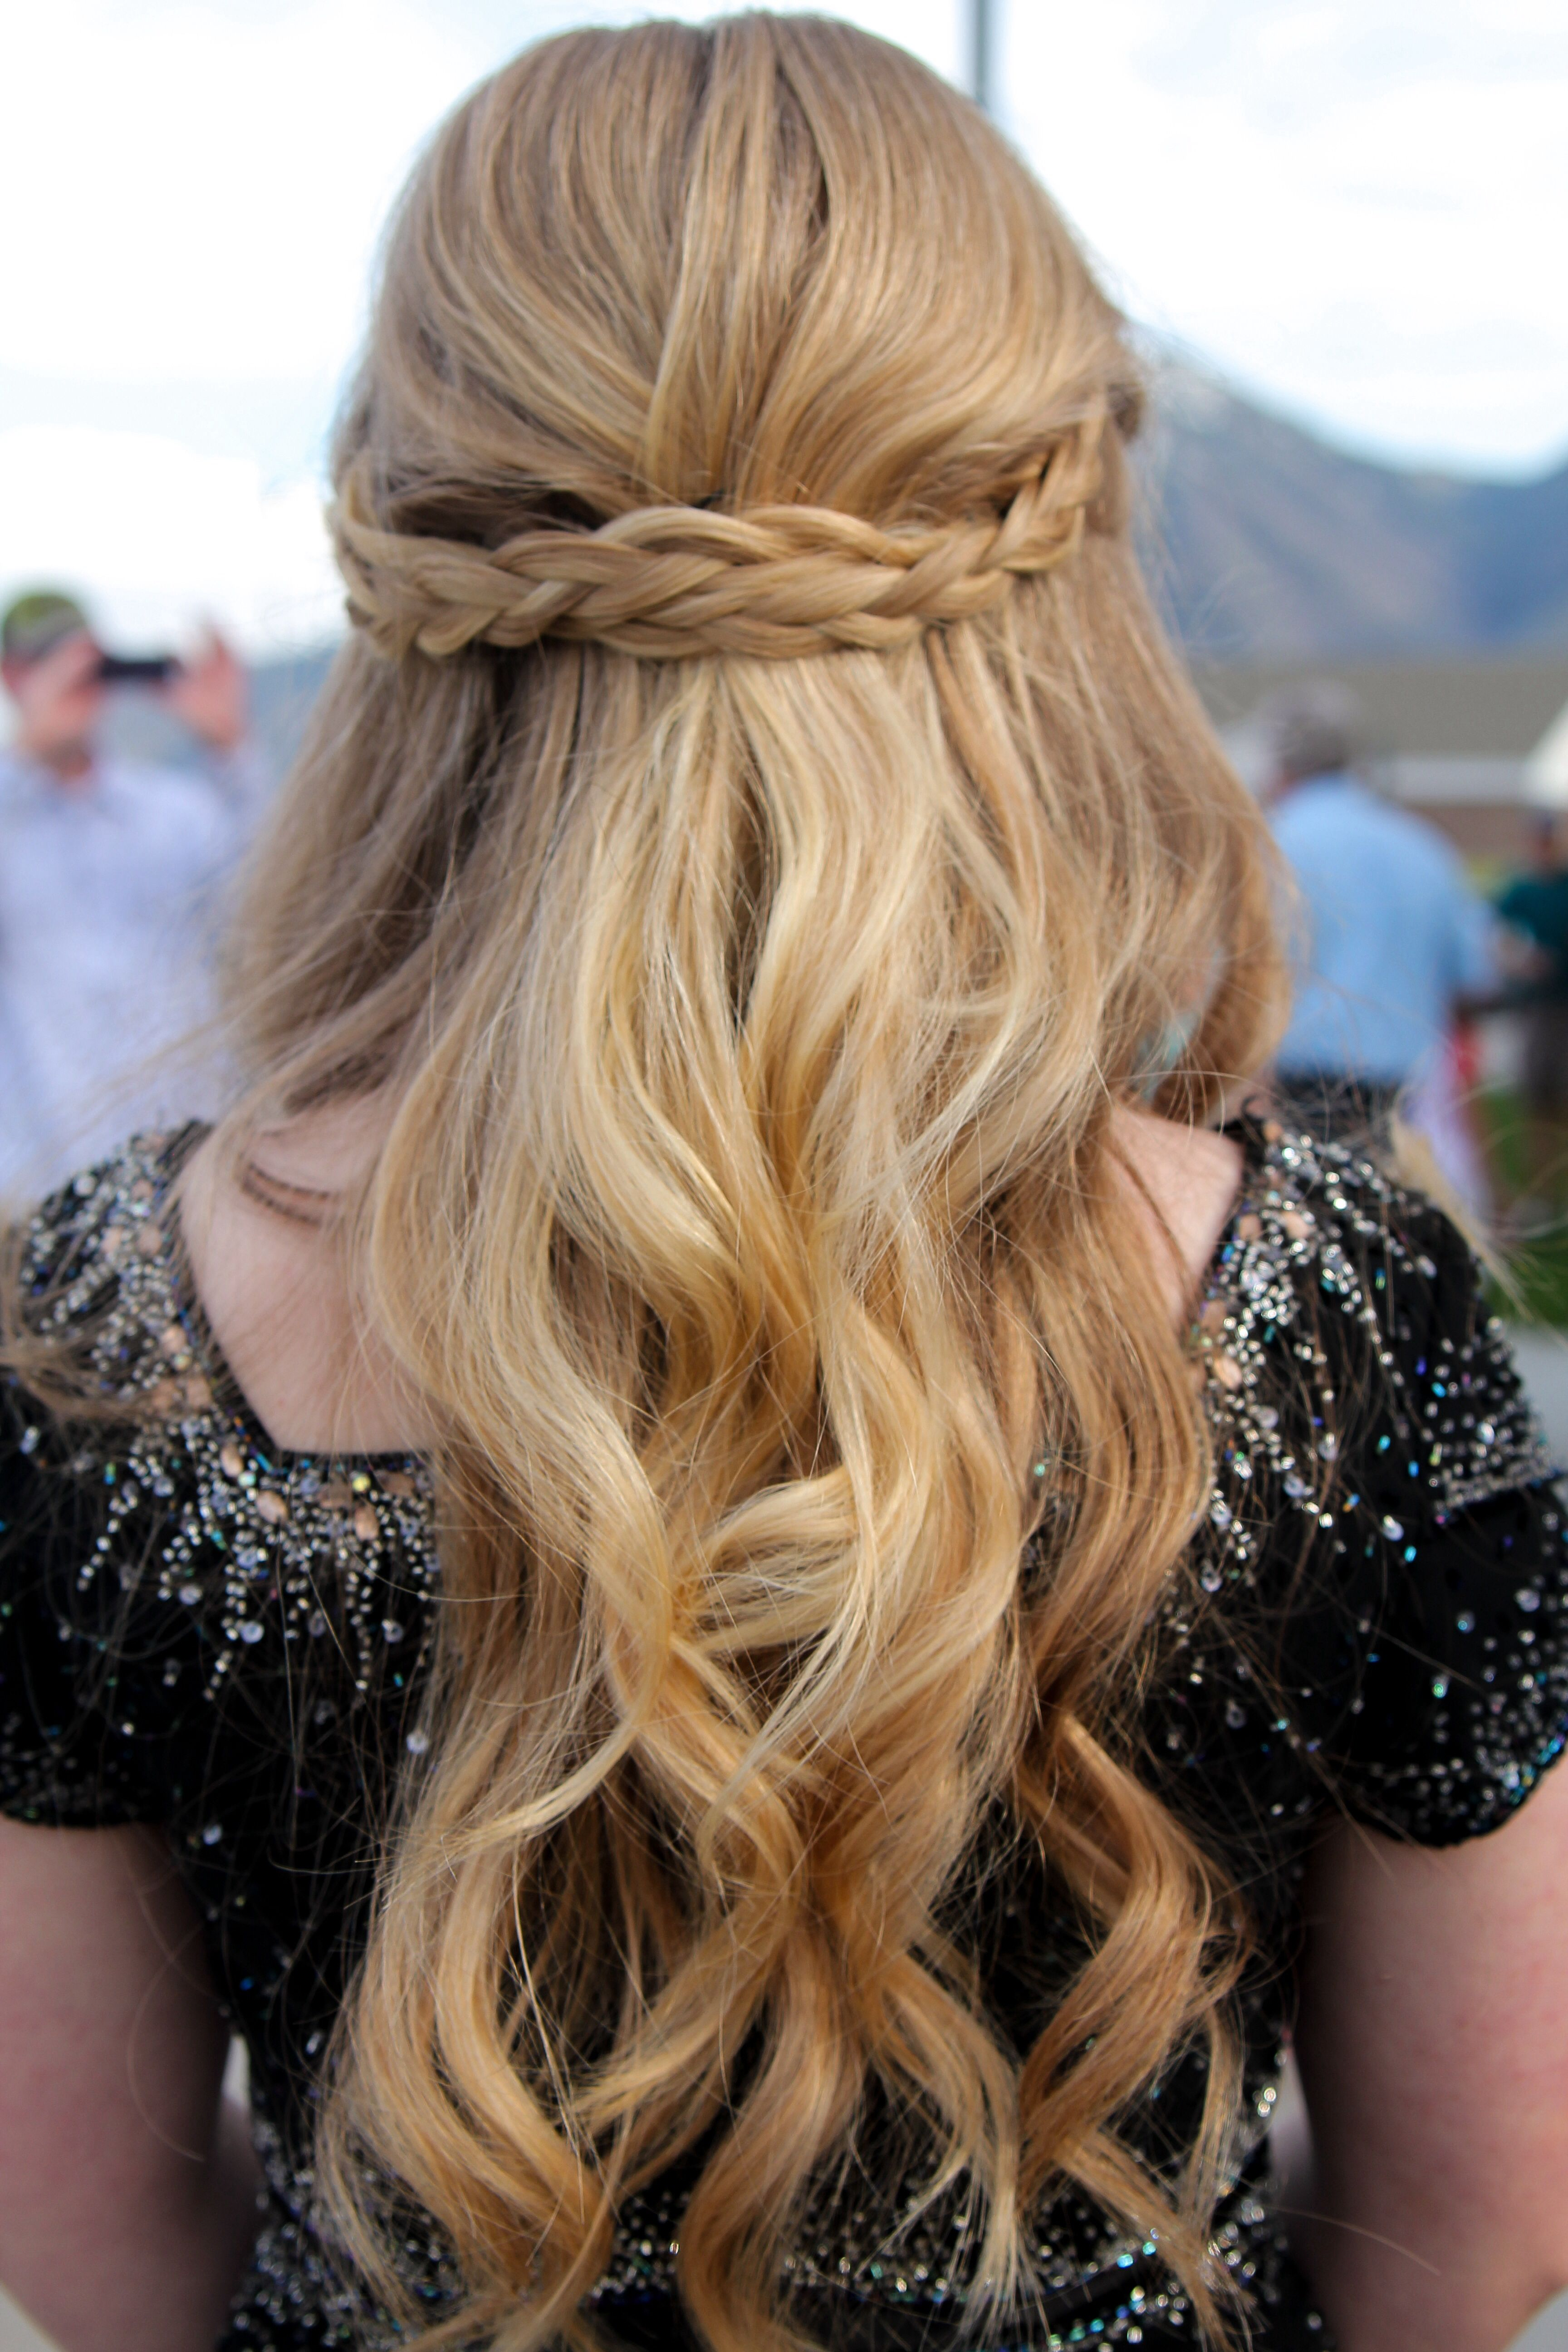 half up half down braided hairstyle. good straight, curly